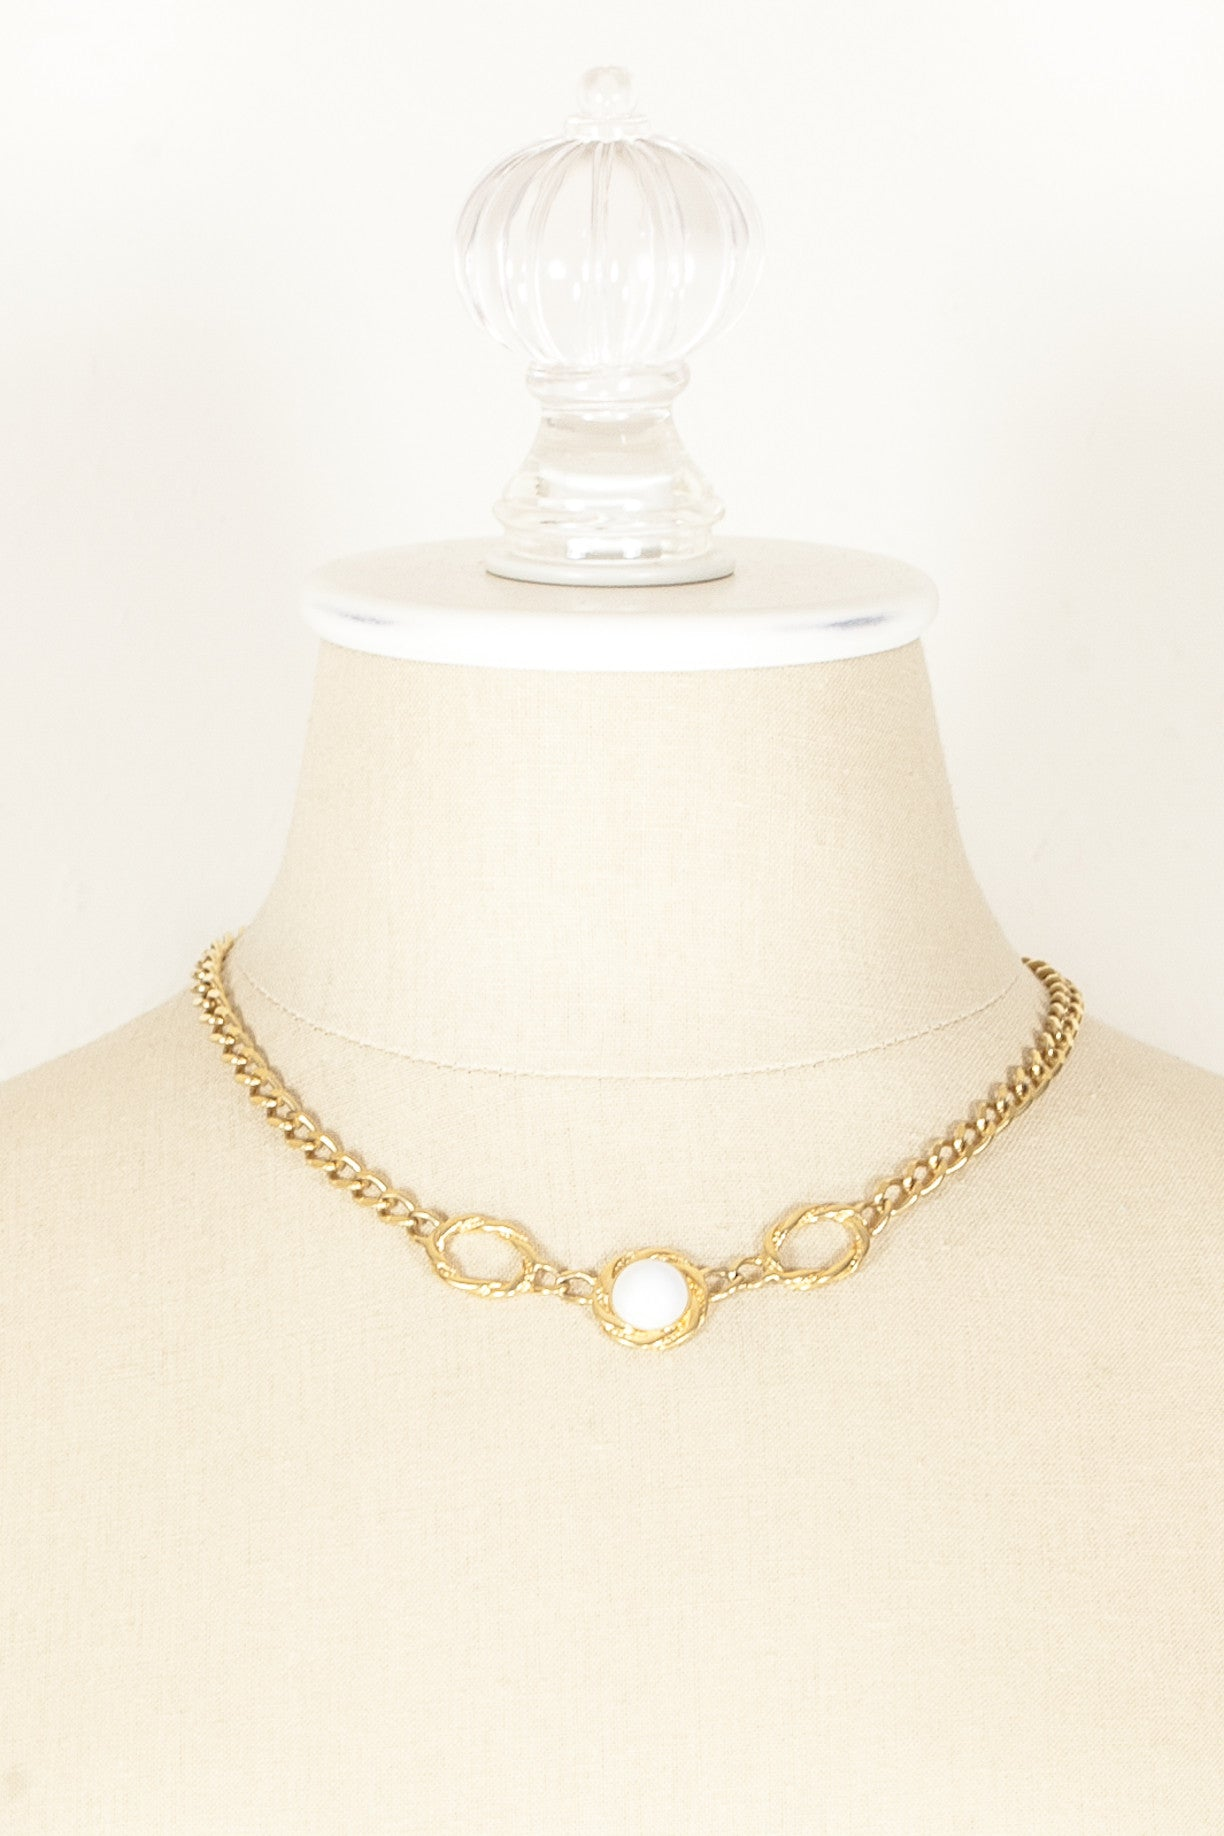 60's__Monet__Dainty White Bead Necklace